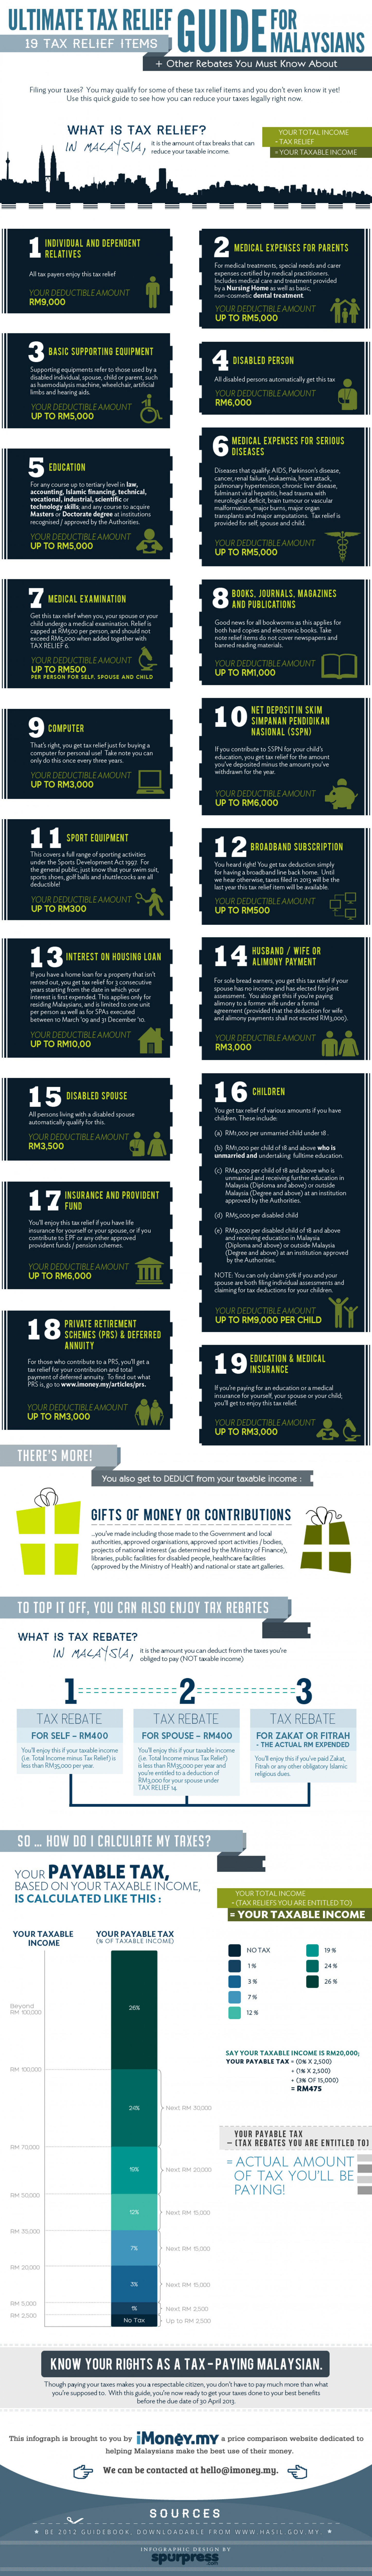 Ultimate tax relief guide for Malaysians Infographic